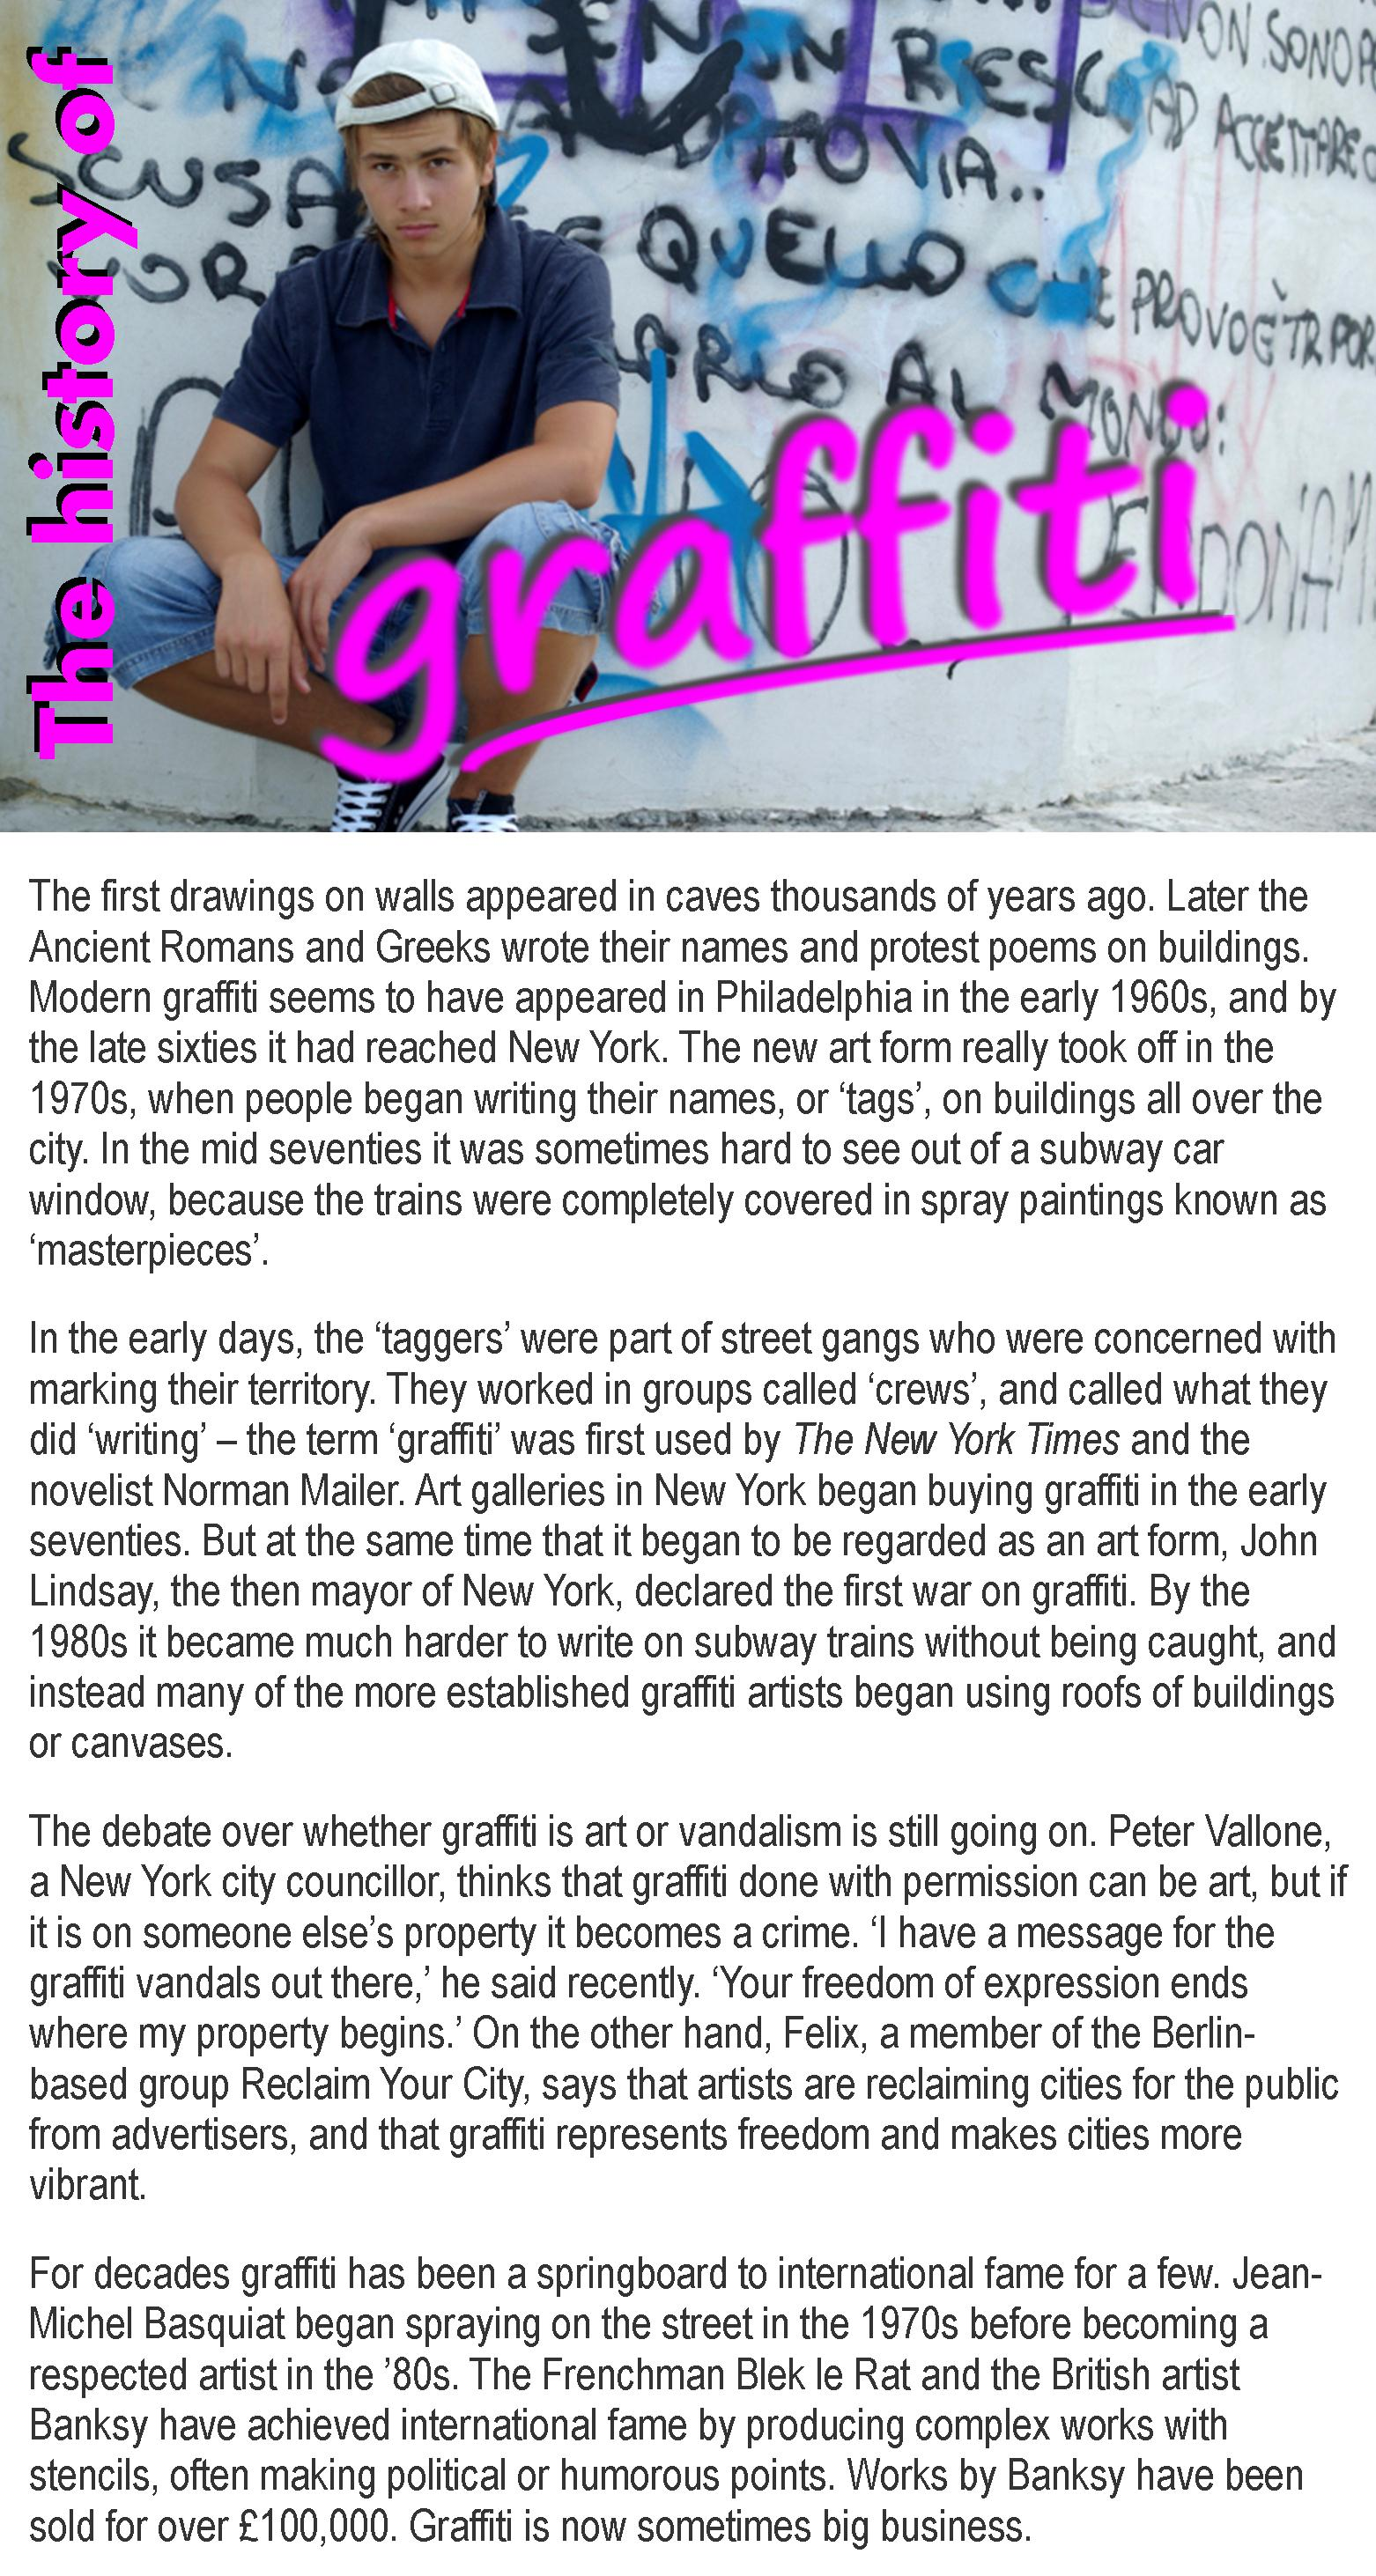 The History Of Graffiti Learnenglish Teens